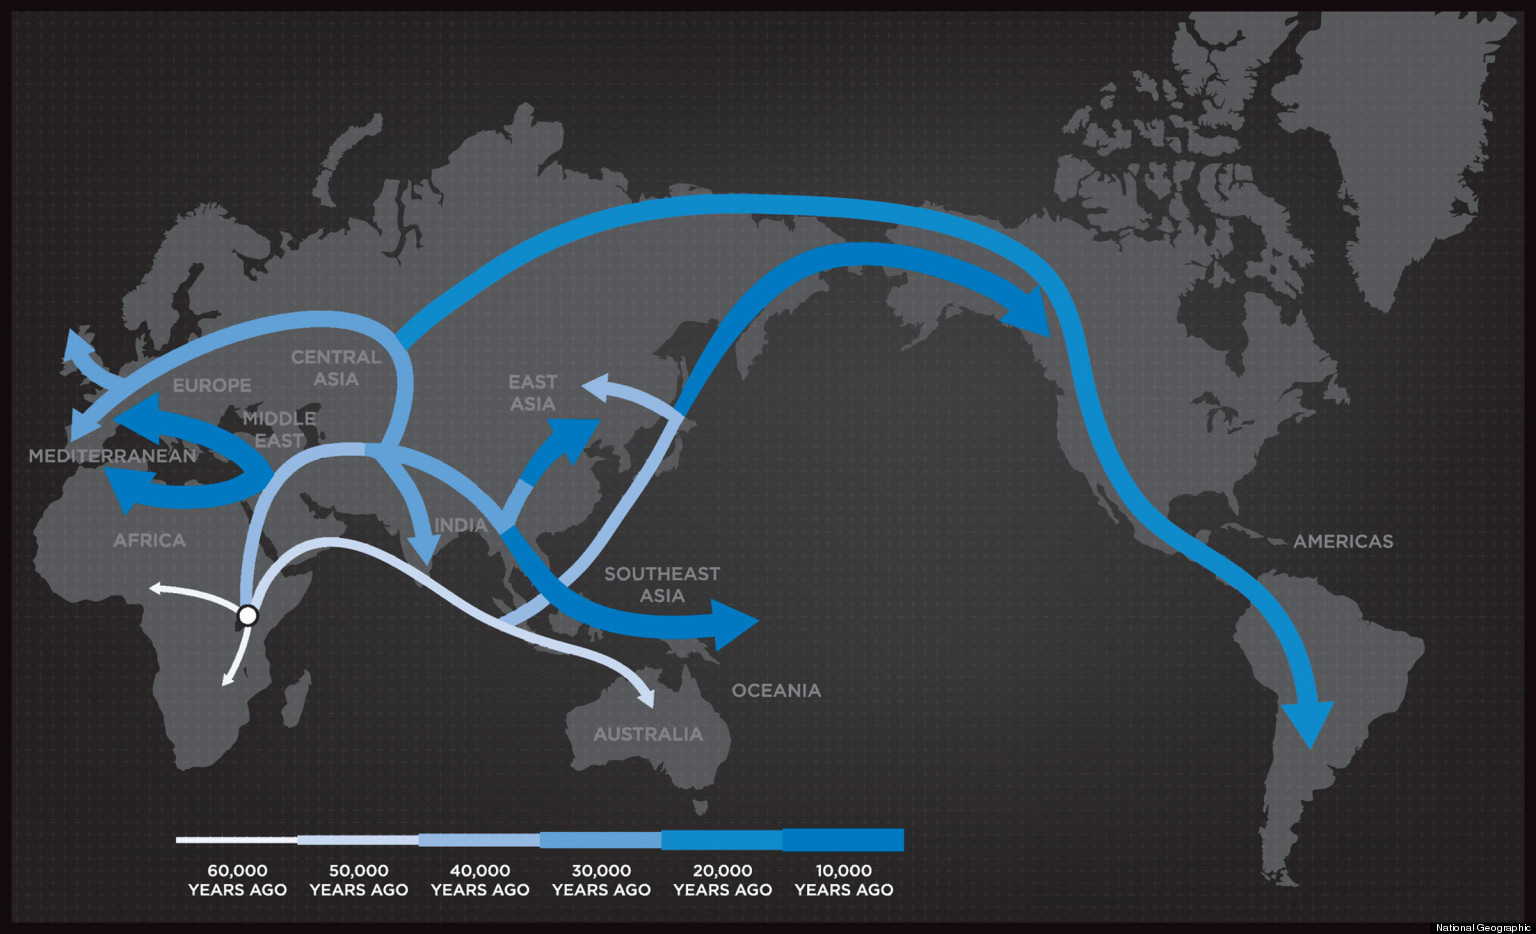 Human evolution migration national geographics genographic human evolution migration national geographics genographic project tells our story video huffpost gumiabroncs Choice Image